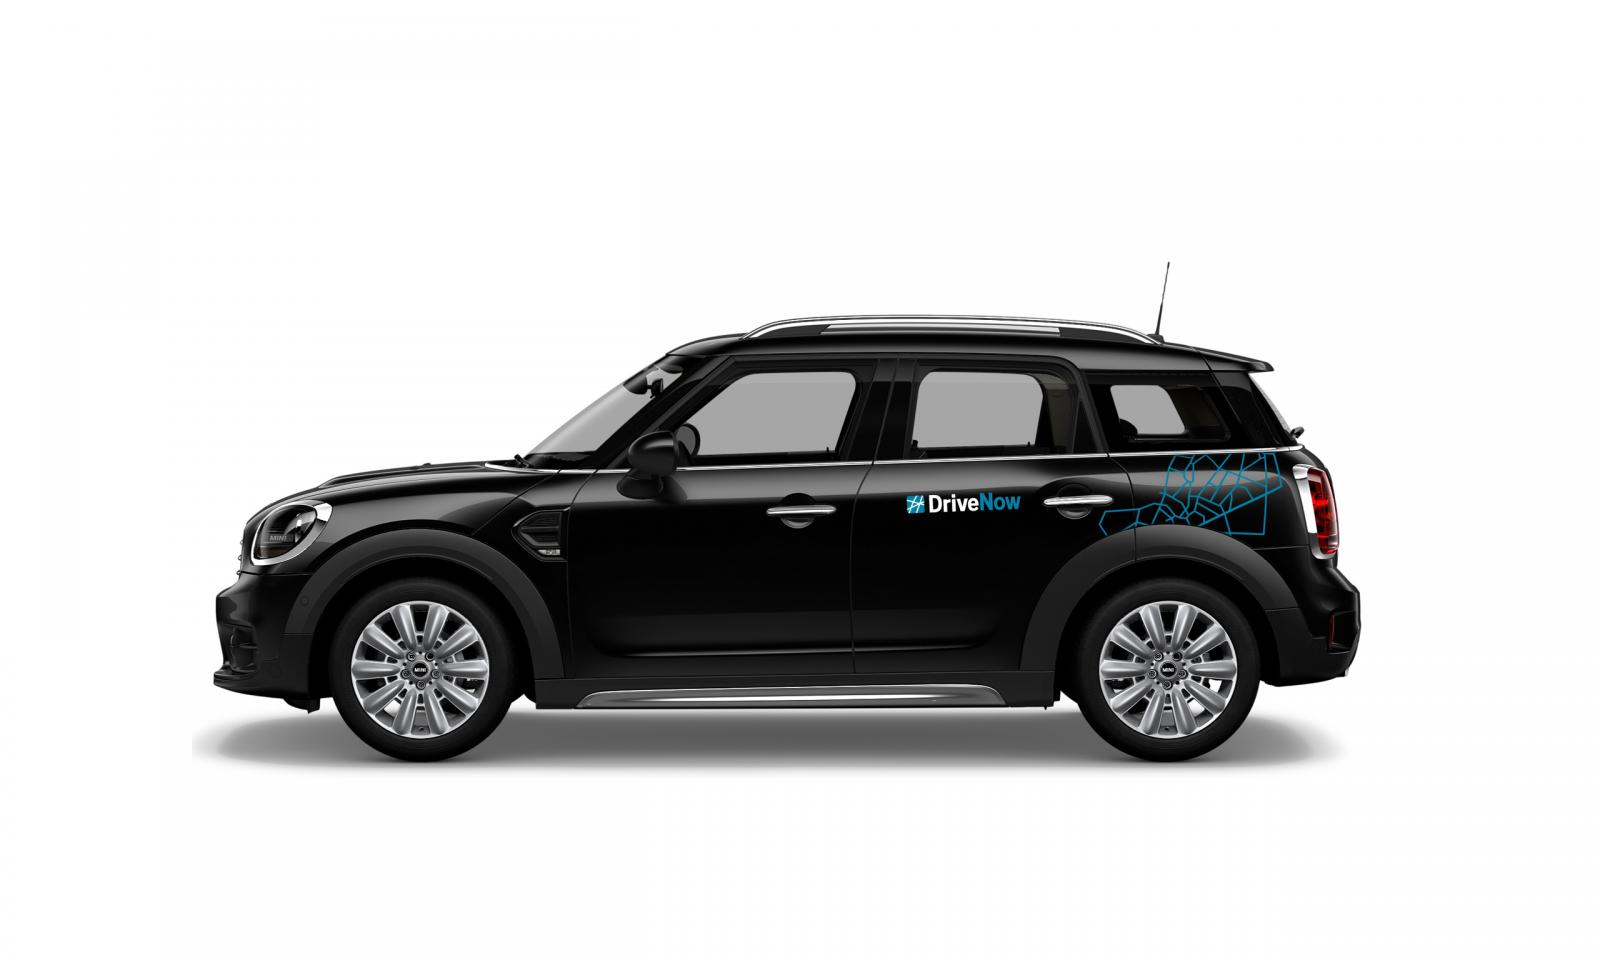 mini-countryman-side-icon